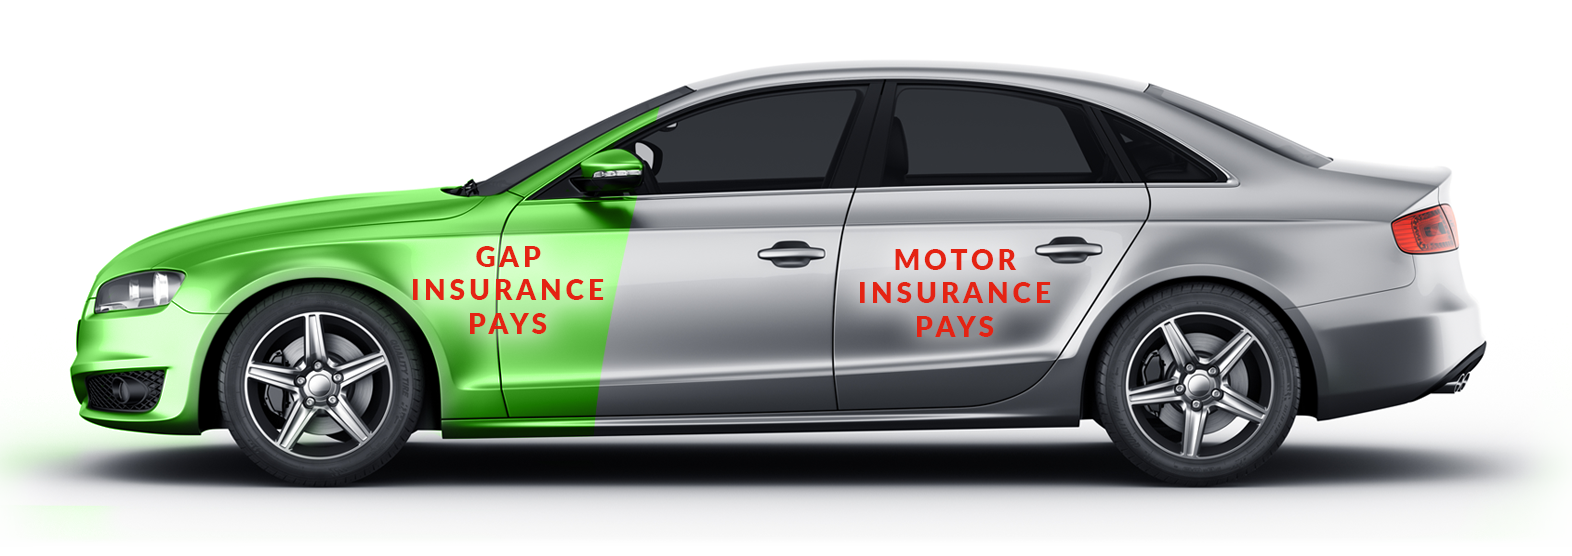 gap insurance, motor insurance pays a percentage and gap insurance covers the rest